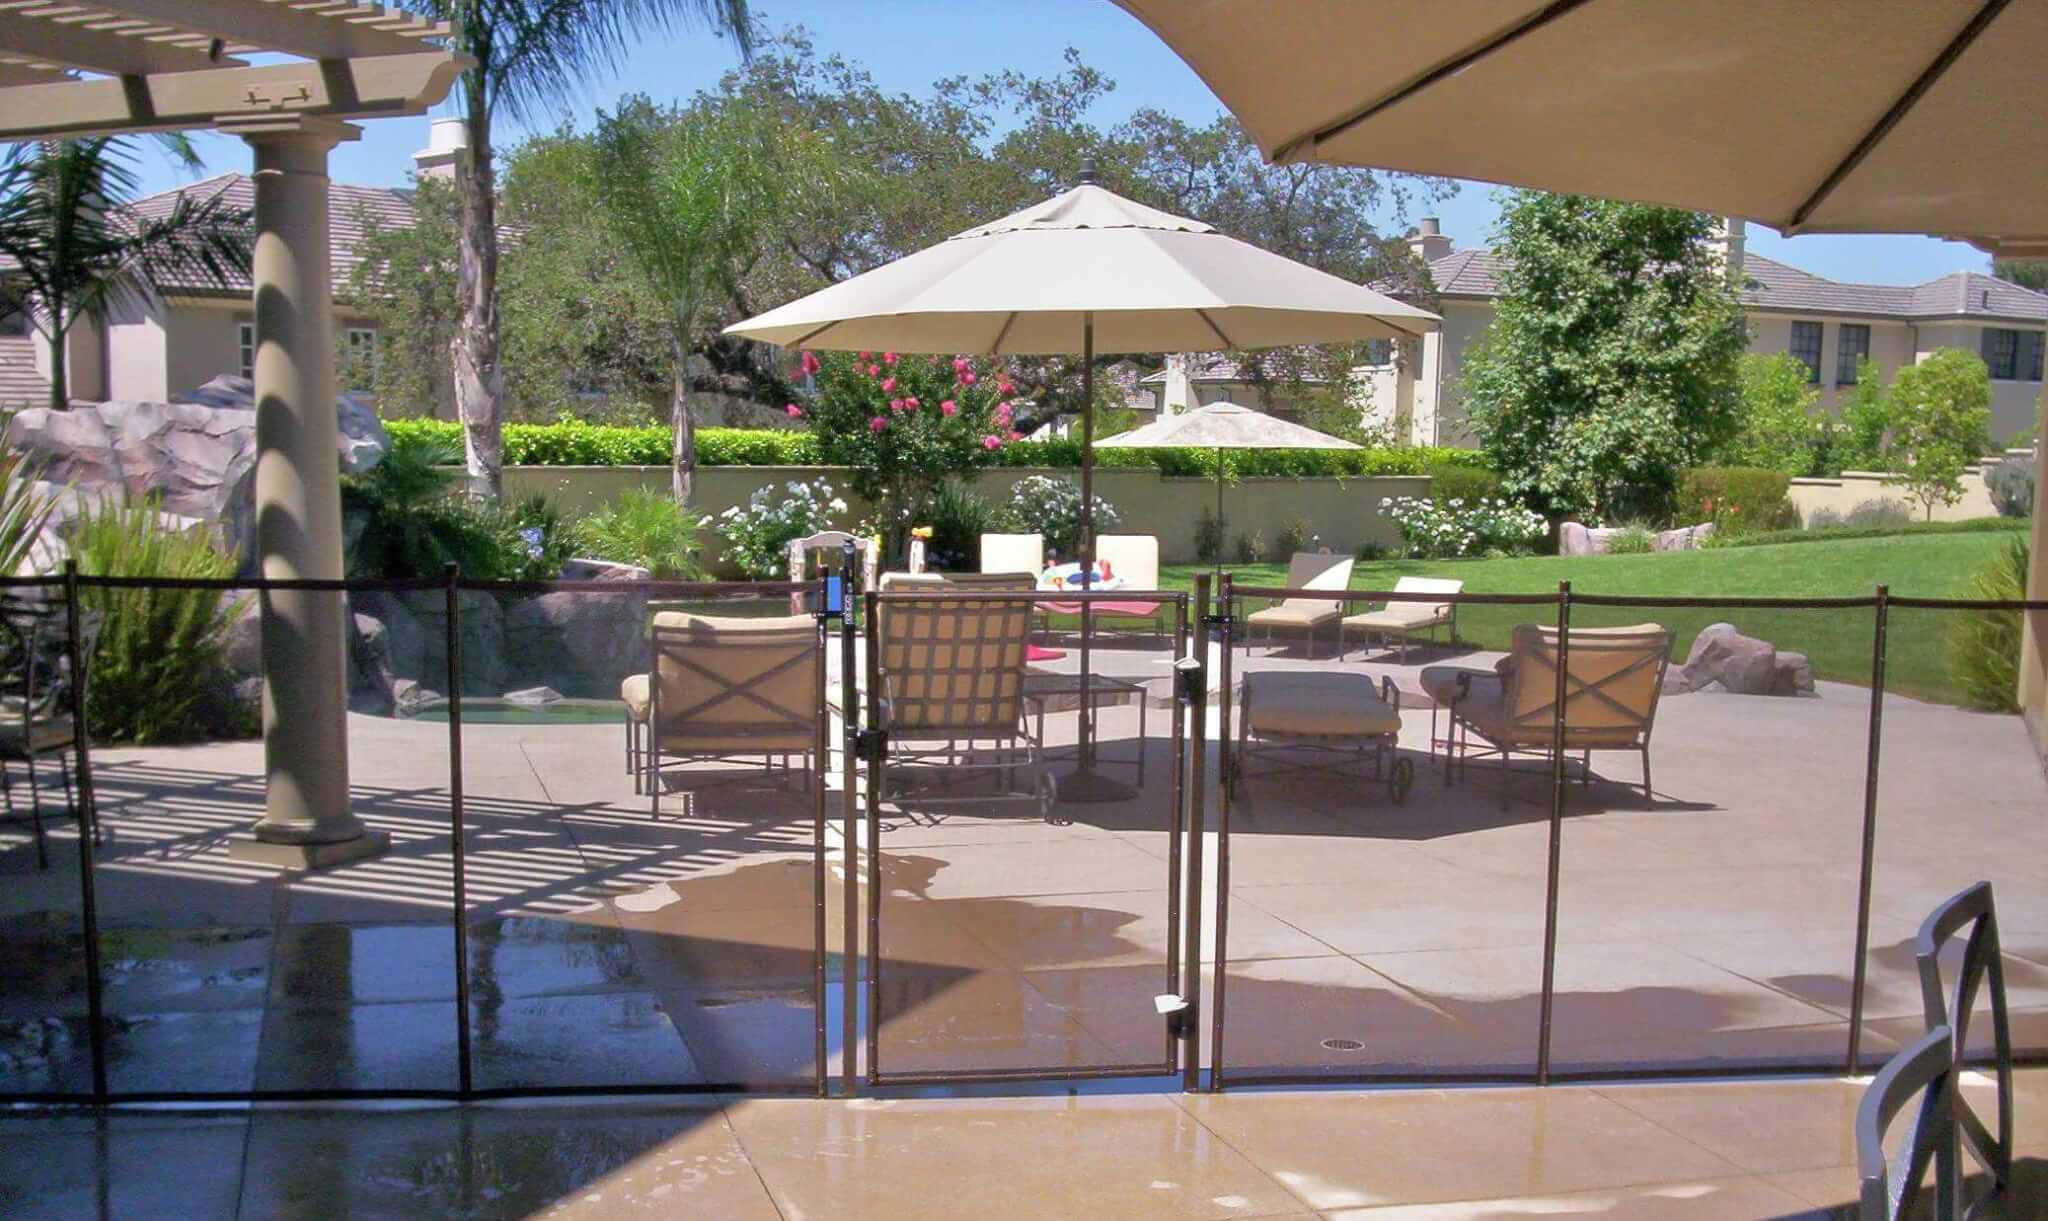 Ultra Mesh Portable Pool Fence All Safe Temporary Pool - Portable Fence